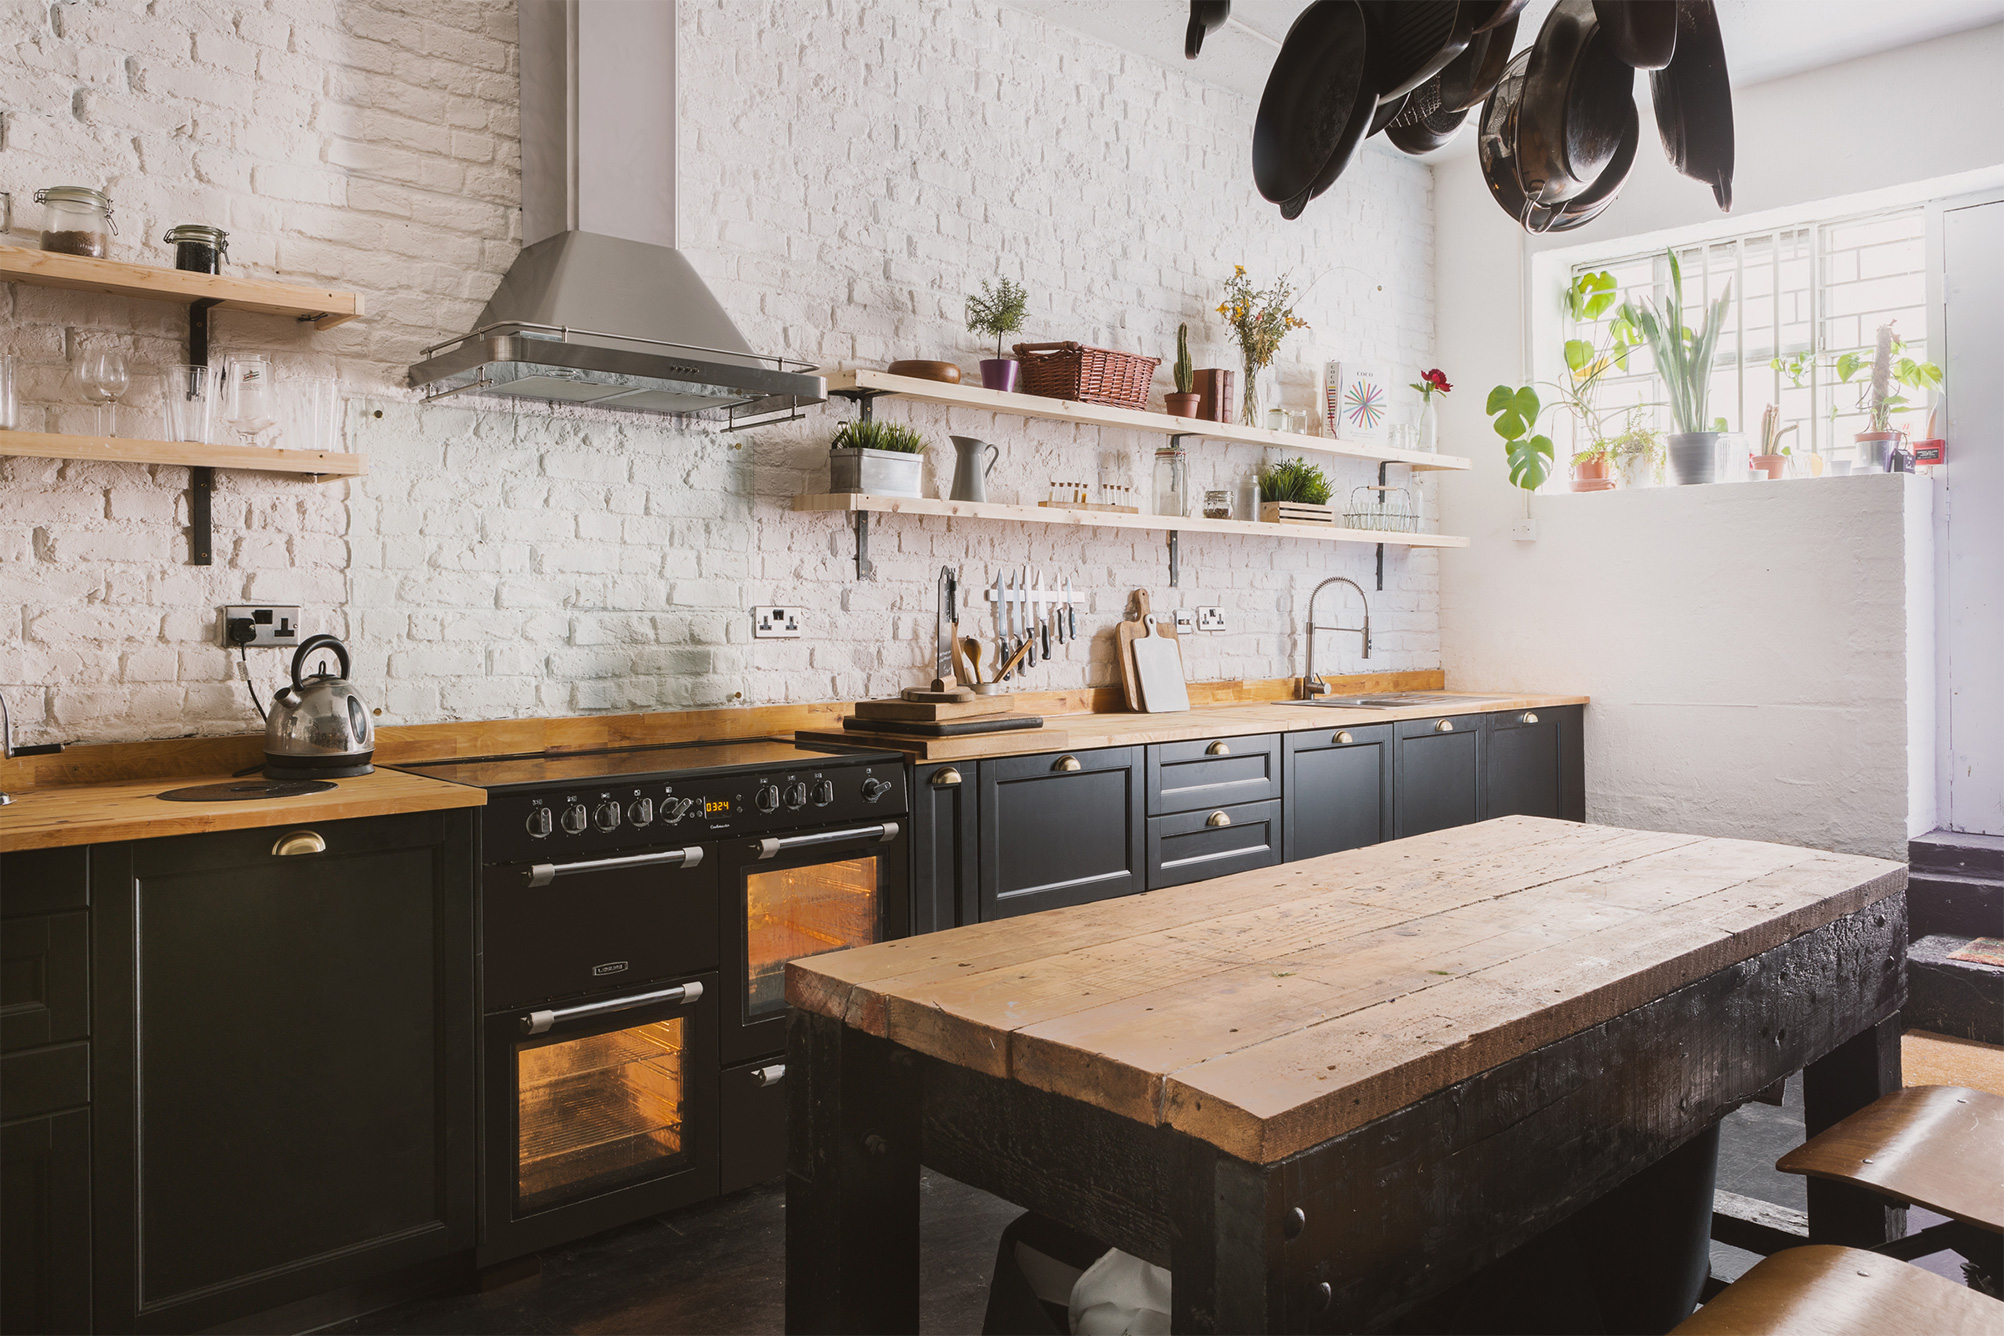 Clapham-Studios-Kitchen-2